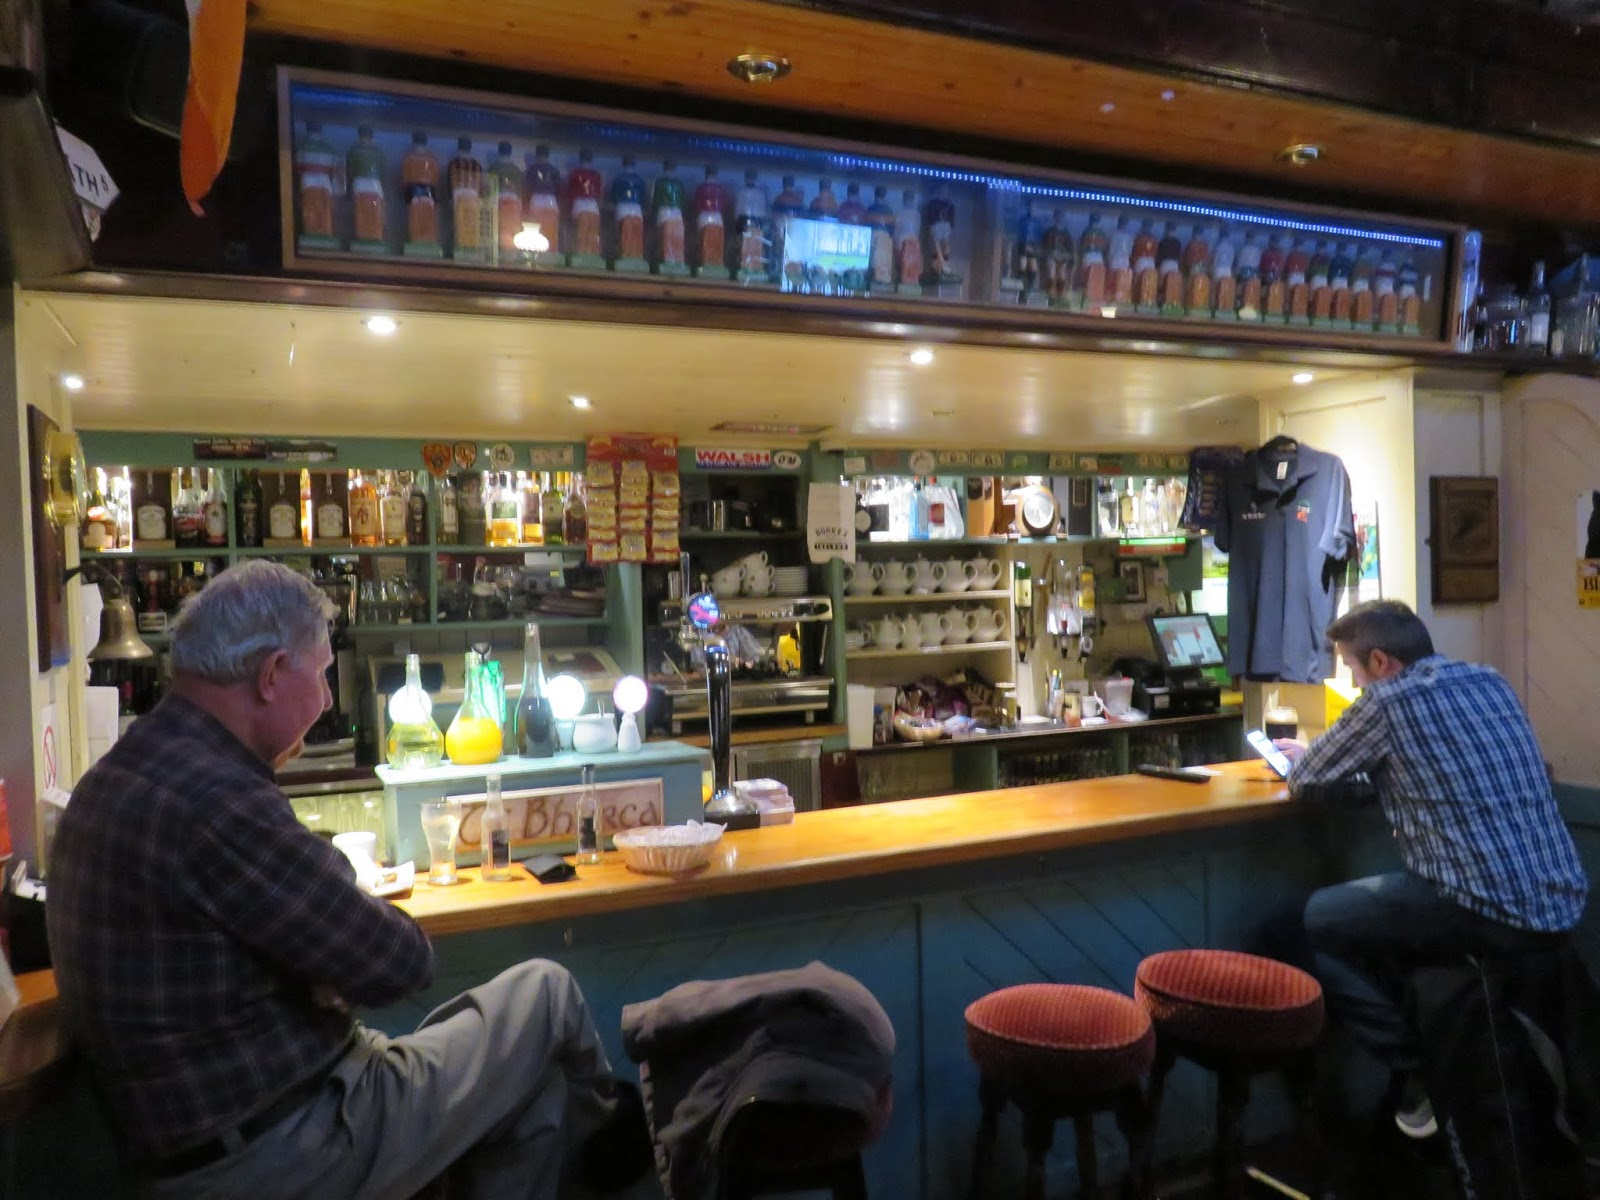 Burkes Was Very Quiet Other Than One Table And These 2 Gentlemen At A Small Segment Of The Bar